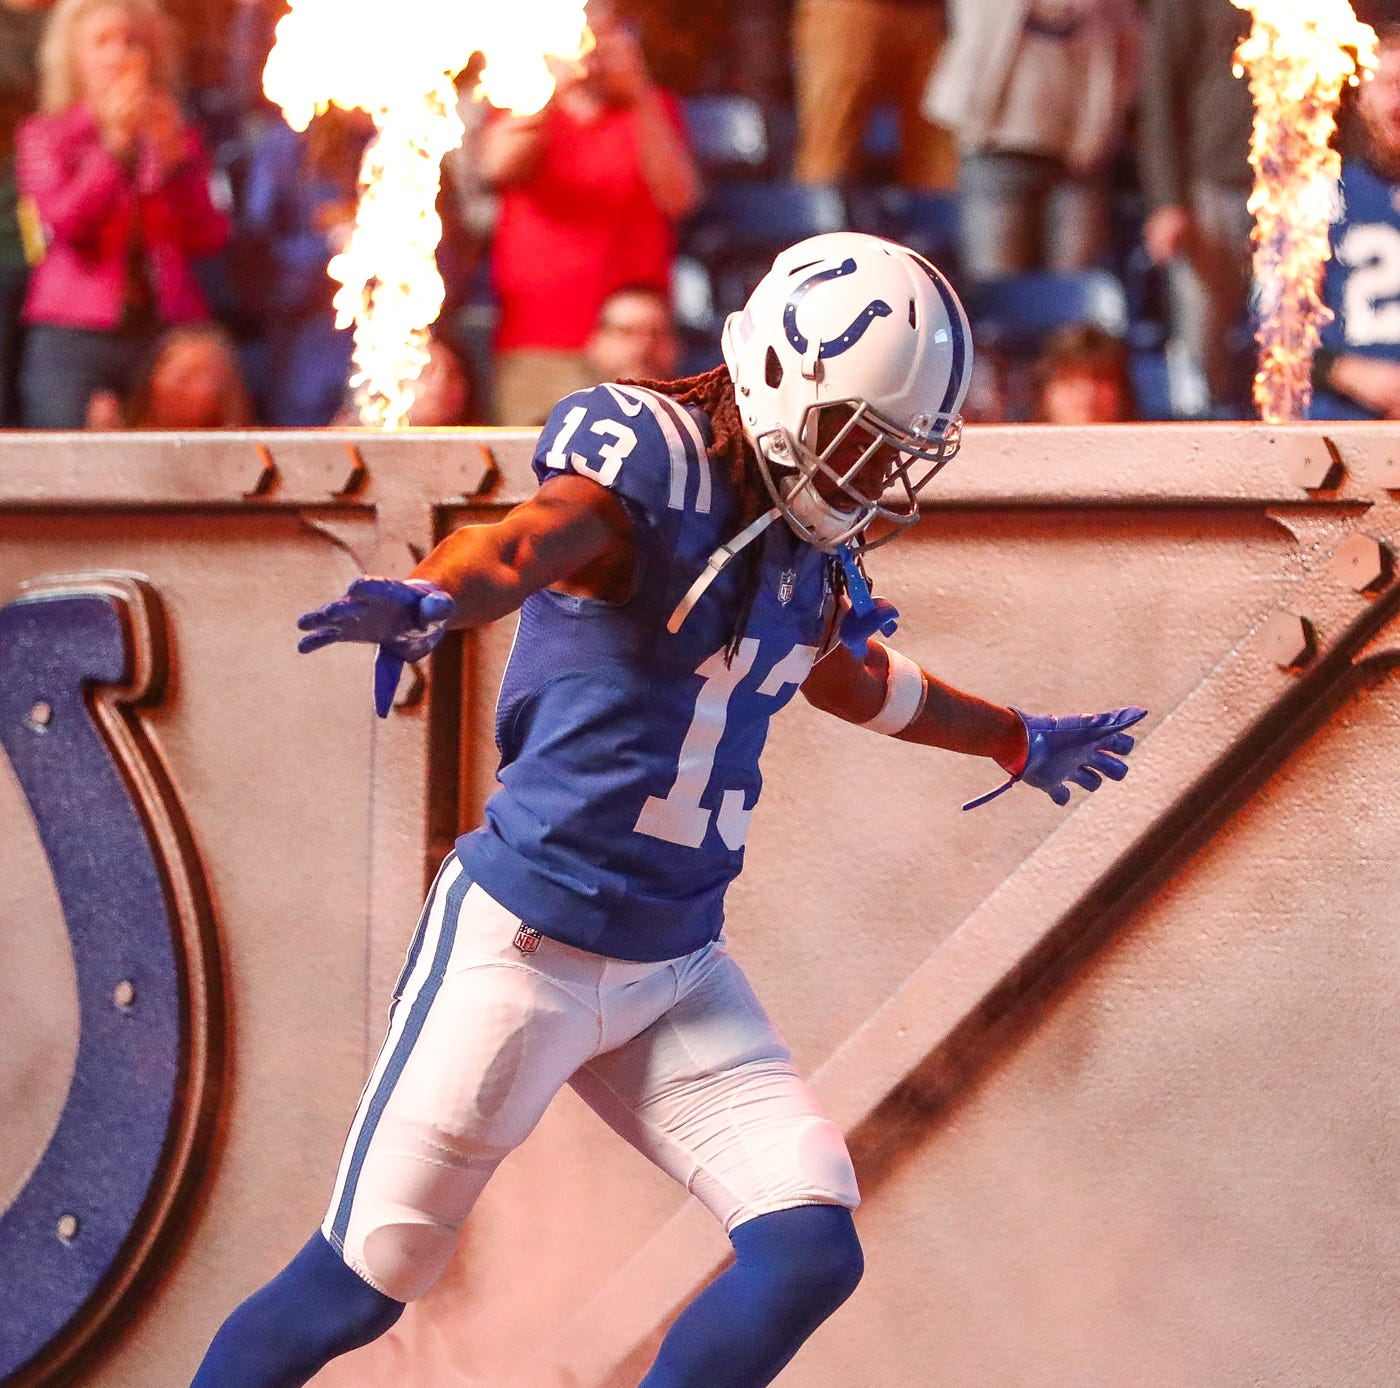 Colts WR T.Y. Hilton's status against Cowboys 'still up in the air' due to ankle injury